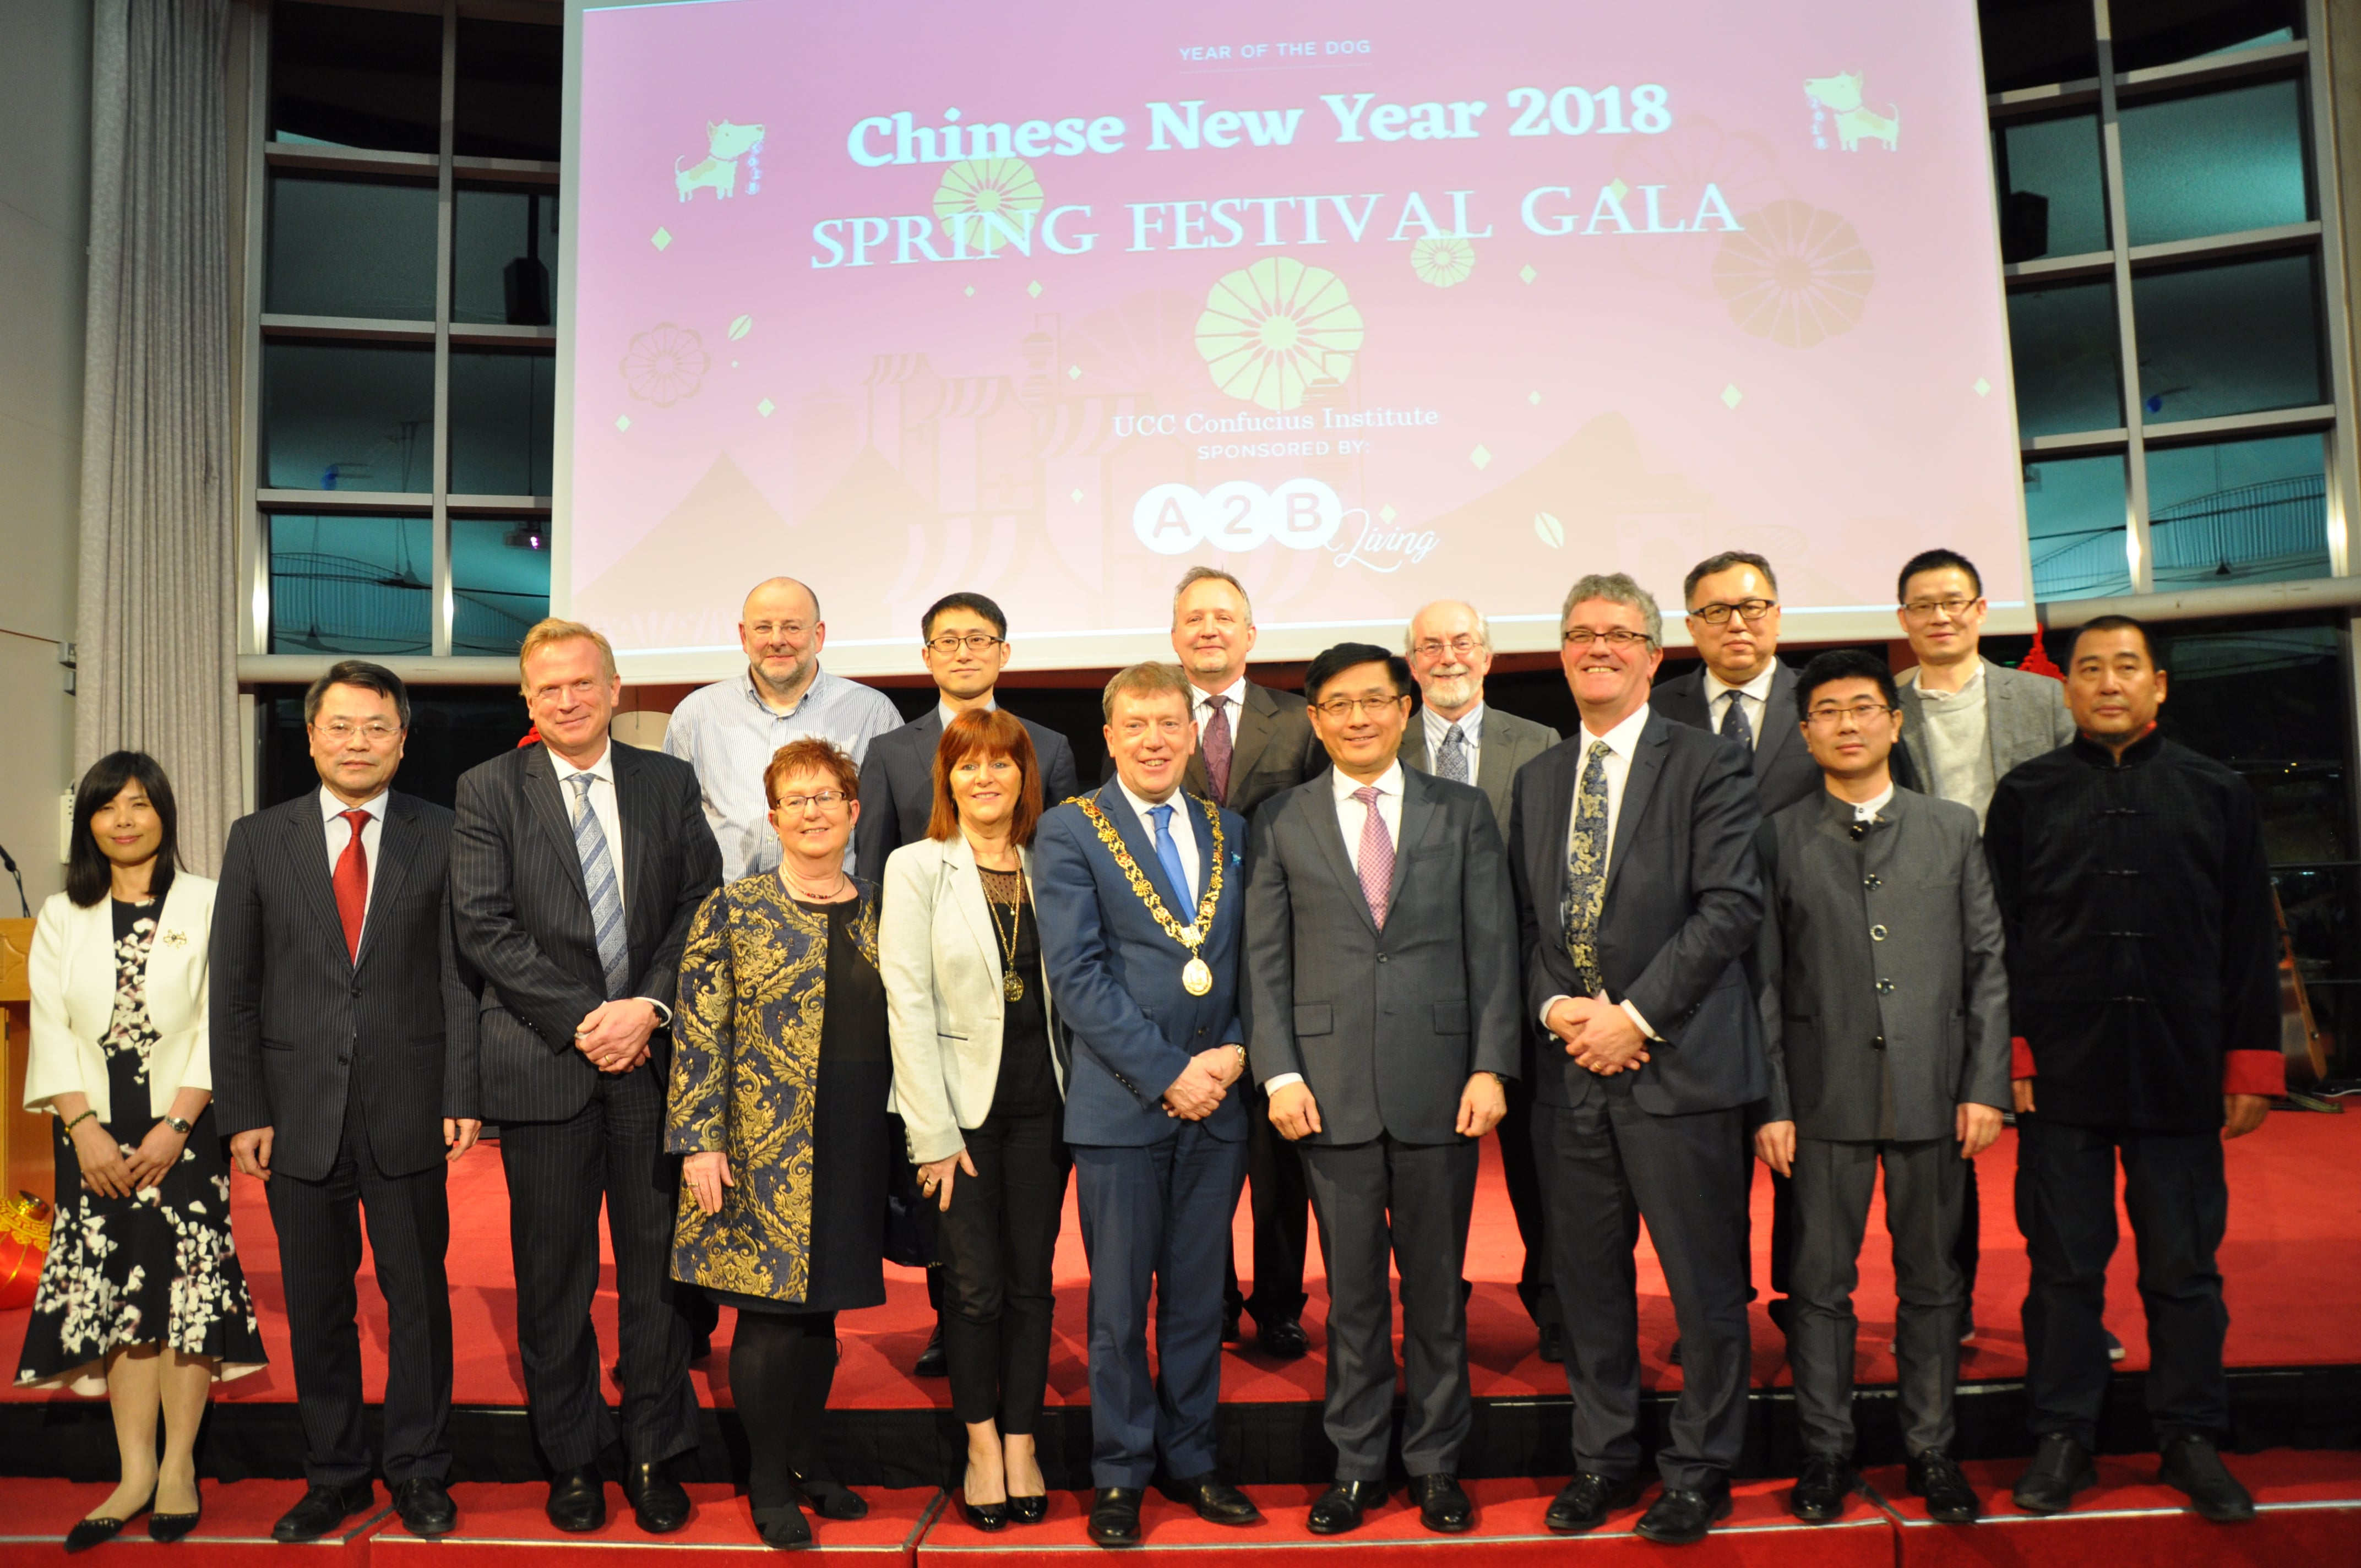 UCC Confucius Institute Successfully Holds 2018 Chinese New Year Celebrations